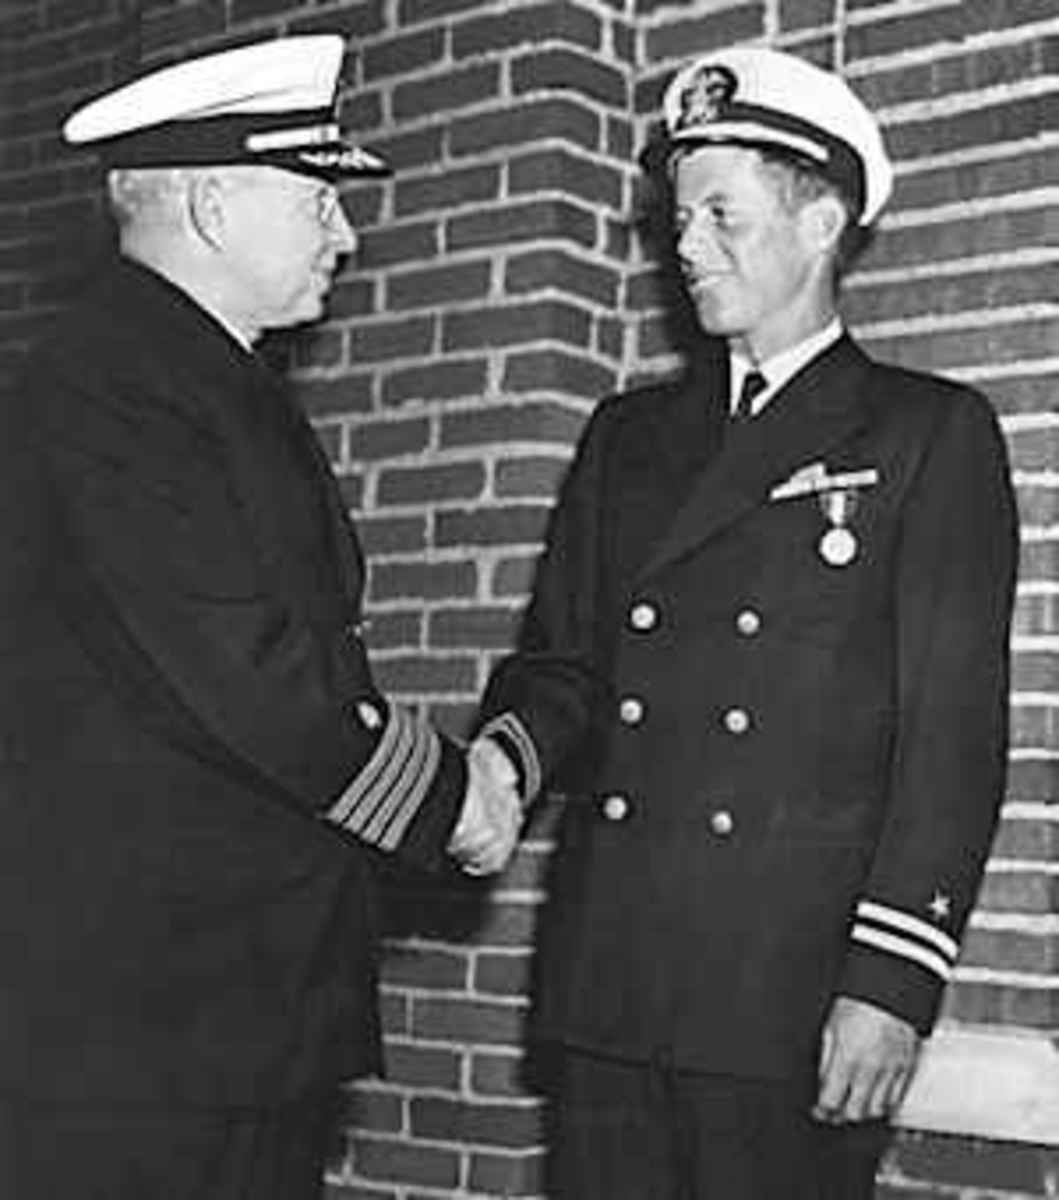 "Lieutenant. John F. Kennedy, USNR, is awarded the Navy and Marine Corps medal for ""...extremely heroic conduct as Commanding Officer of Motor Torpedo Boat 109..."". He rescued a crew of PT 109 during WWII on 8-2-43, when hit by a Japanese destroyer."